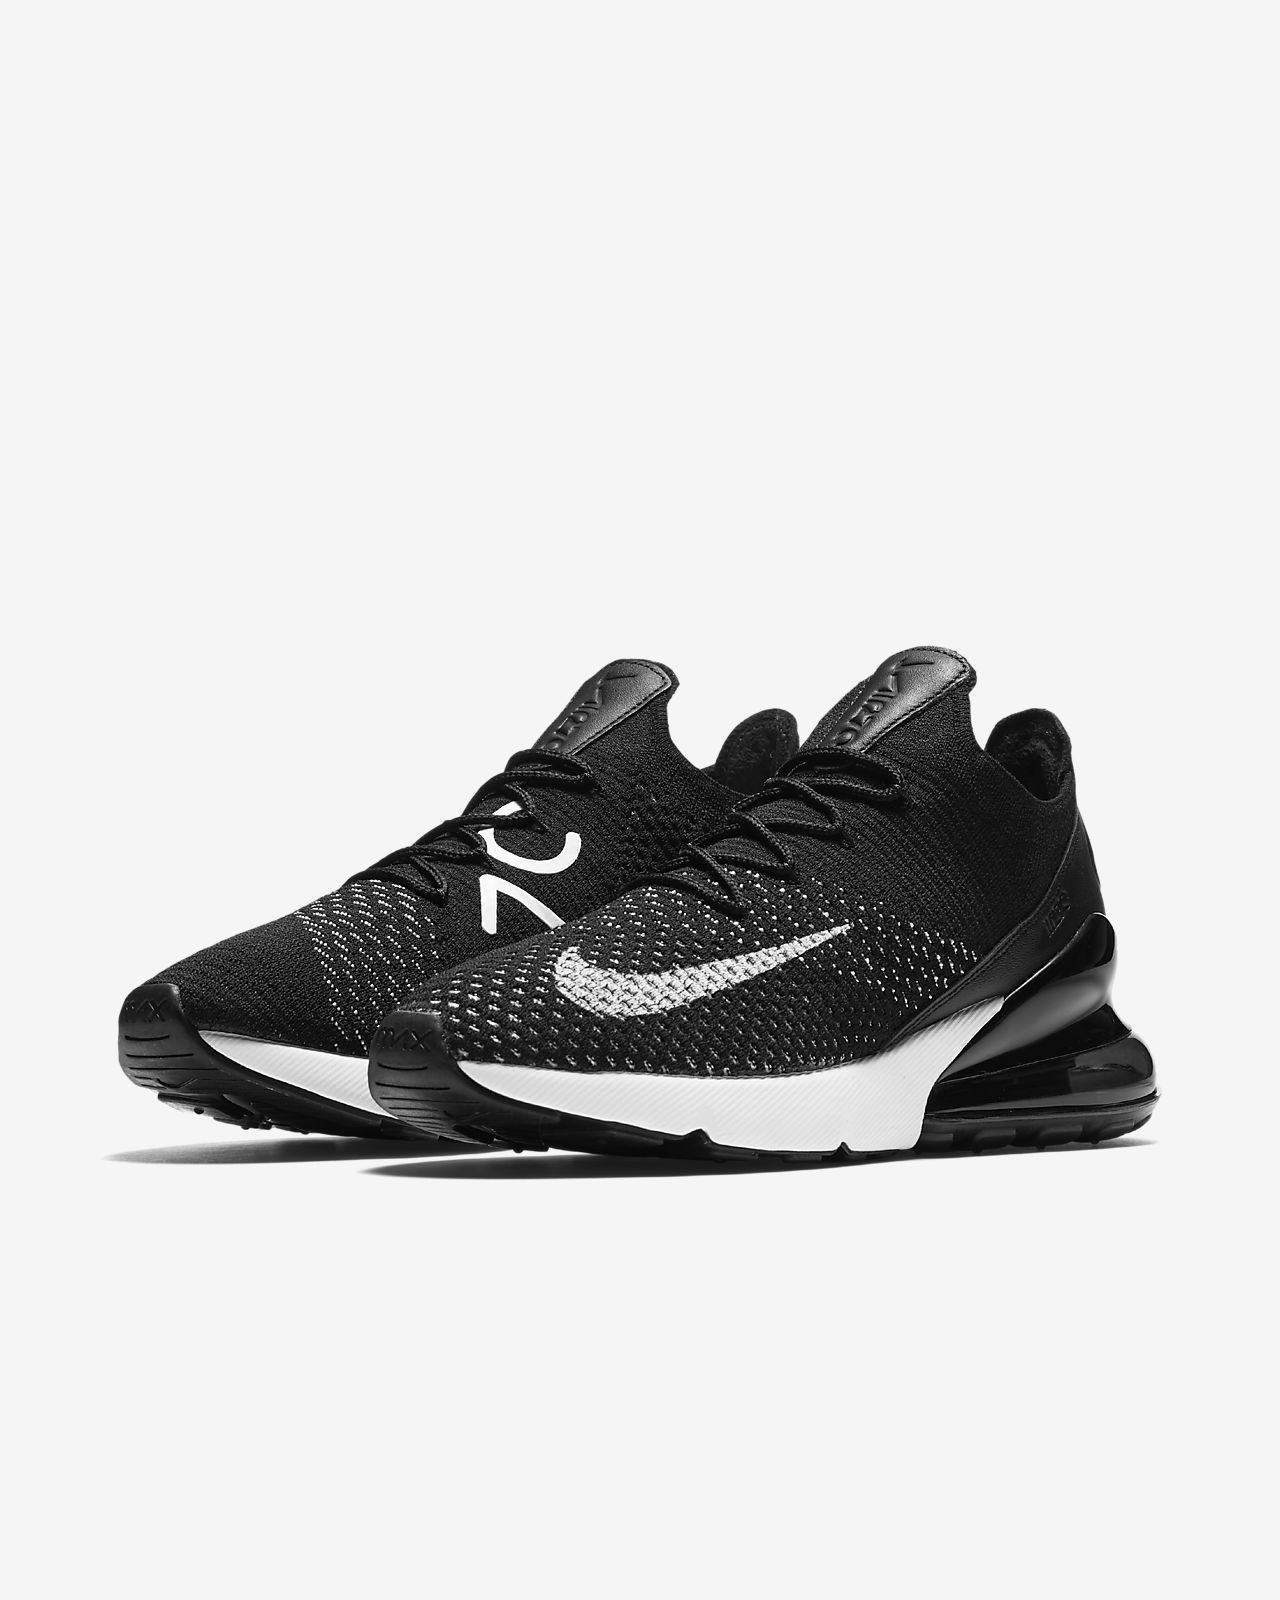 competitive price 37bbc 4c6a9 Chaussure Nike Air Max 270 Flyknit pour Femme